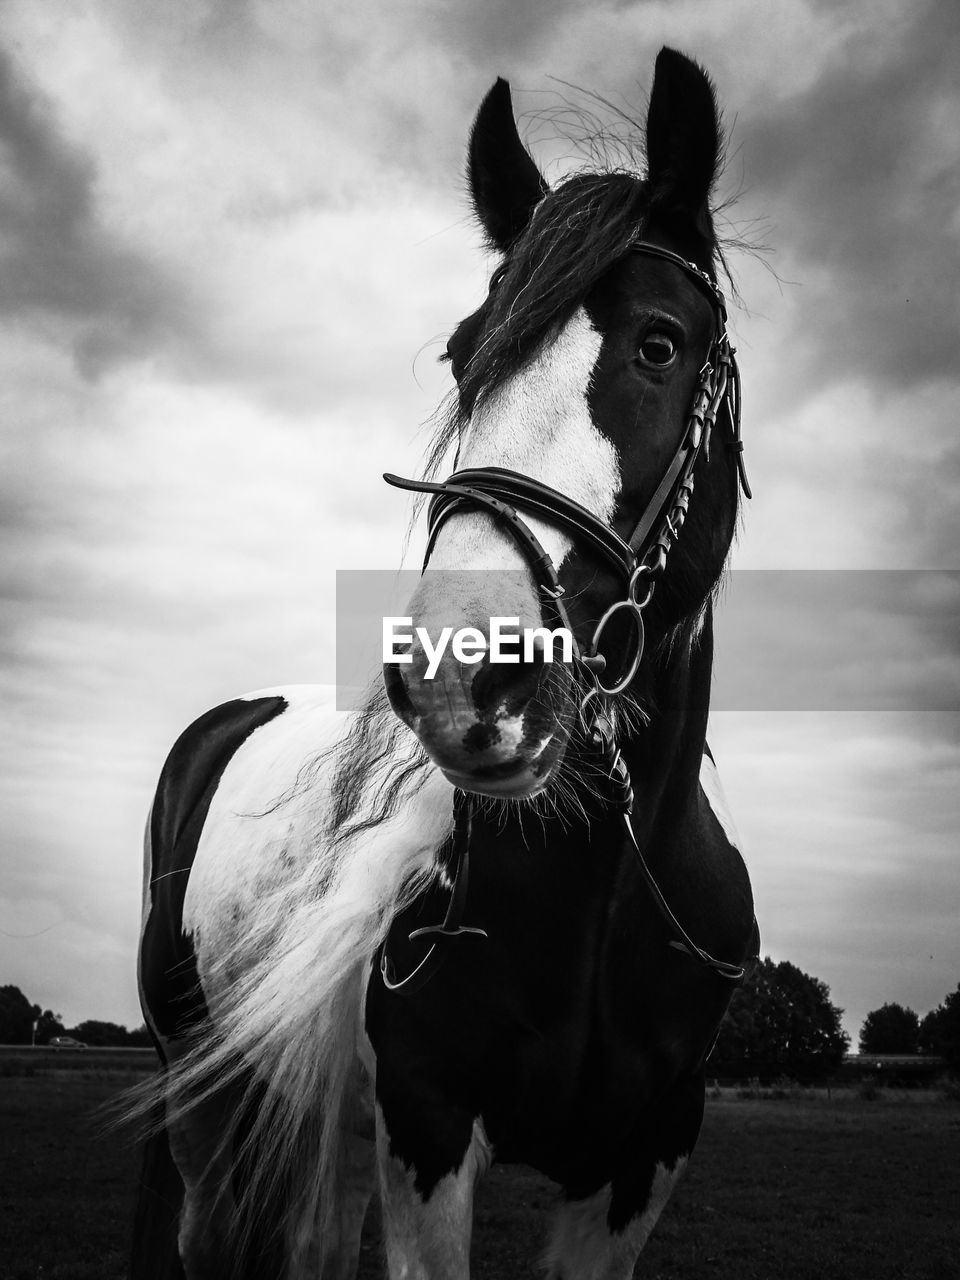 Close-Up Portrait Of Horse On Field Against Cloudy Sky